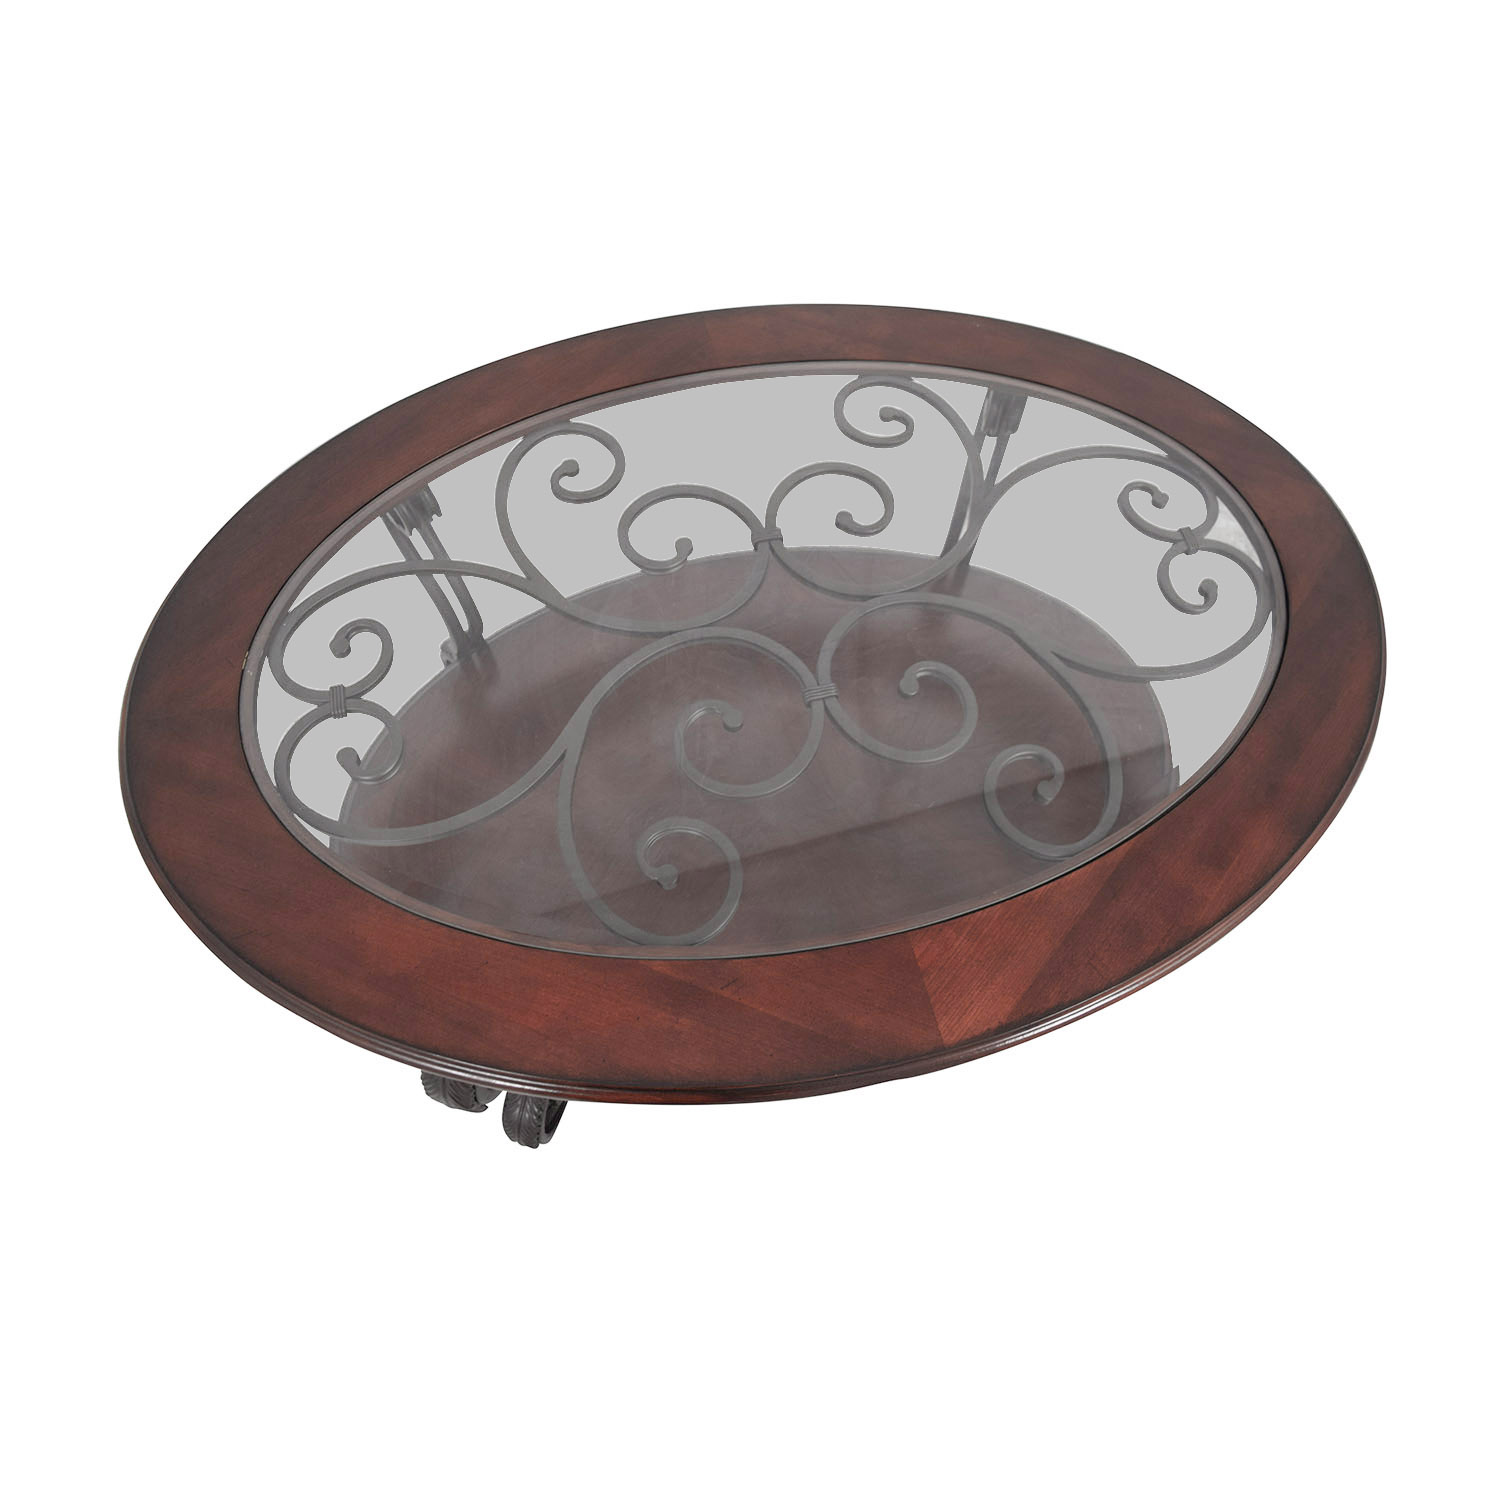 Oval Wood And Metal Coffee Table: Ashley Furniture Ashley Furniture Oval Glass